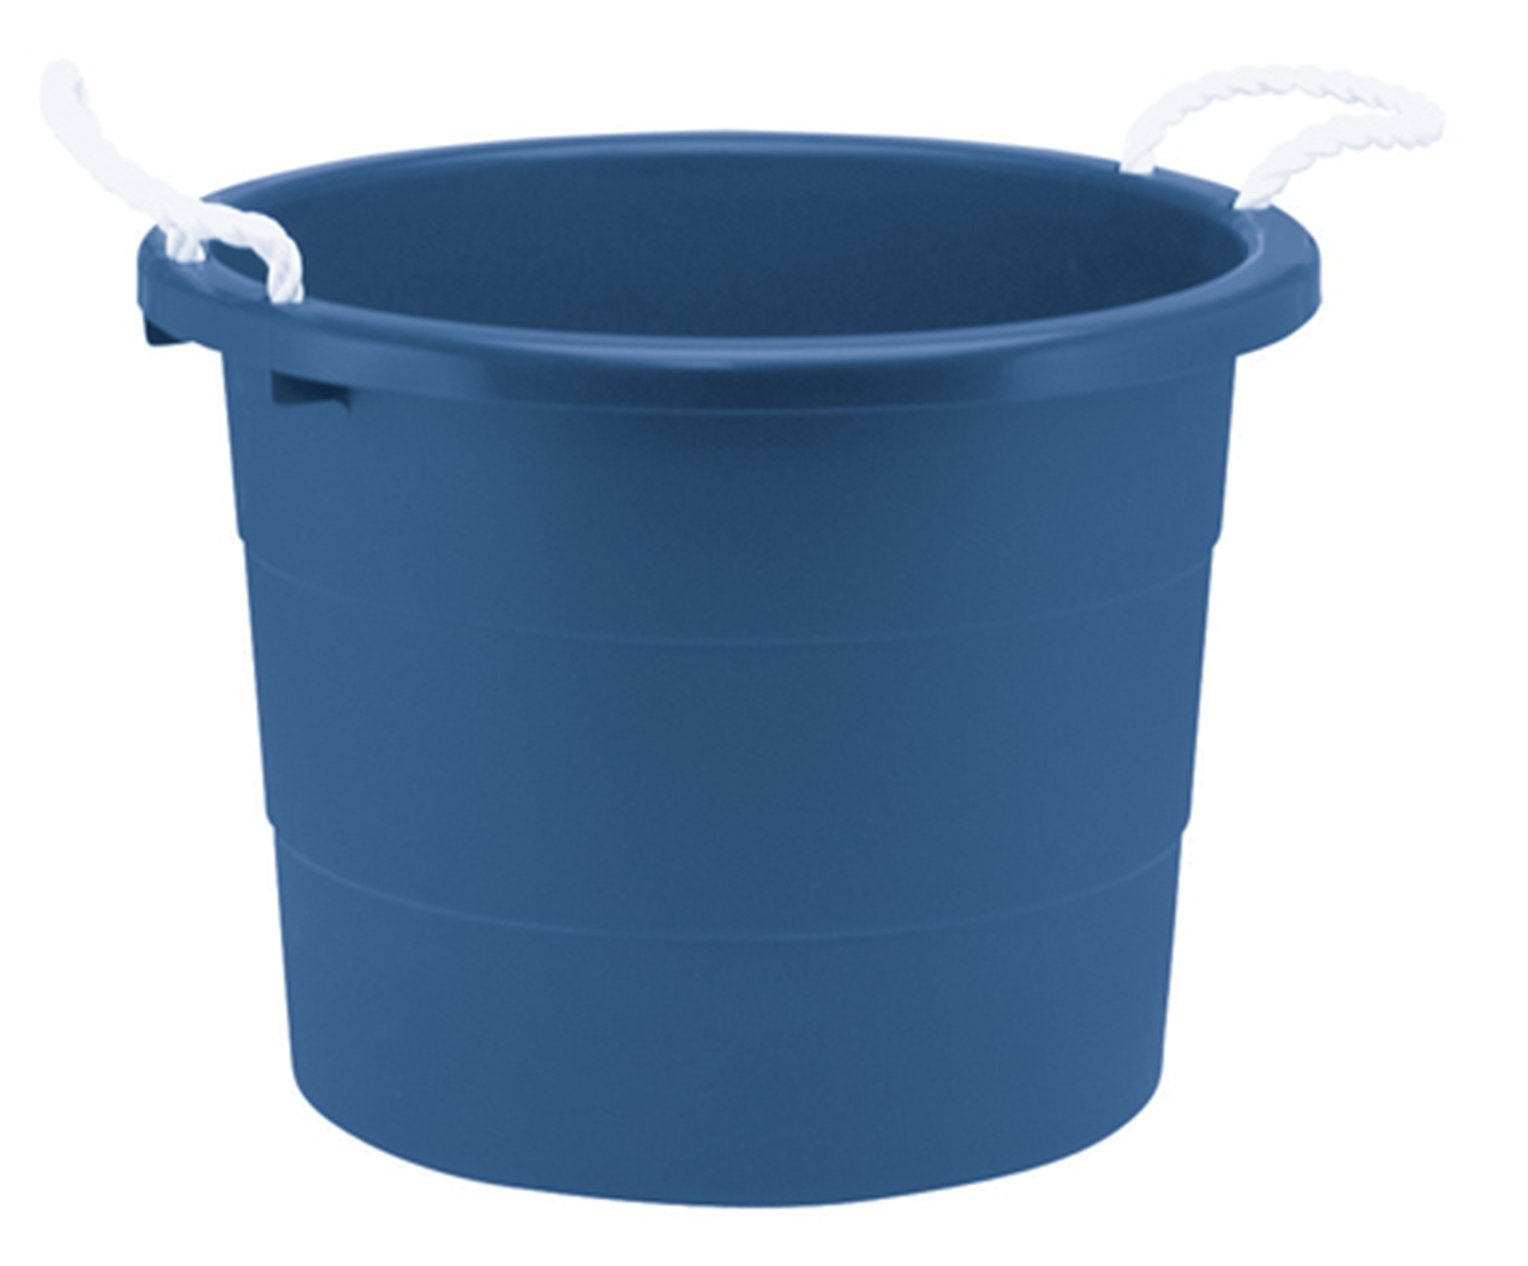 United Solutions TU0014 Nineteen Gallon Blue Rope Handle Tub-19 Gallon/71.9L Rough and Rugged Tub Featuring Rope Handles in Blue by United Solutions (Image #1)